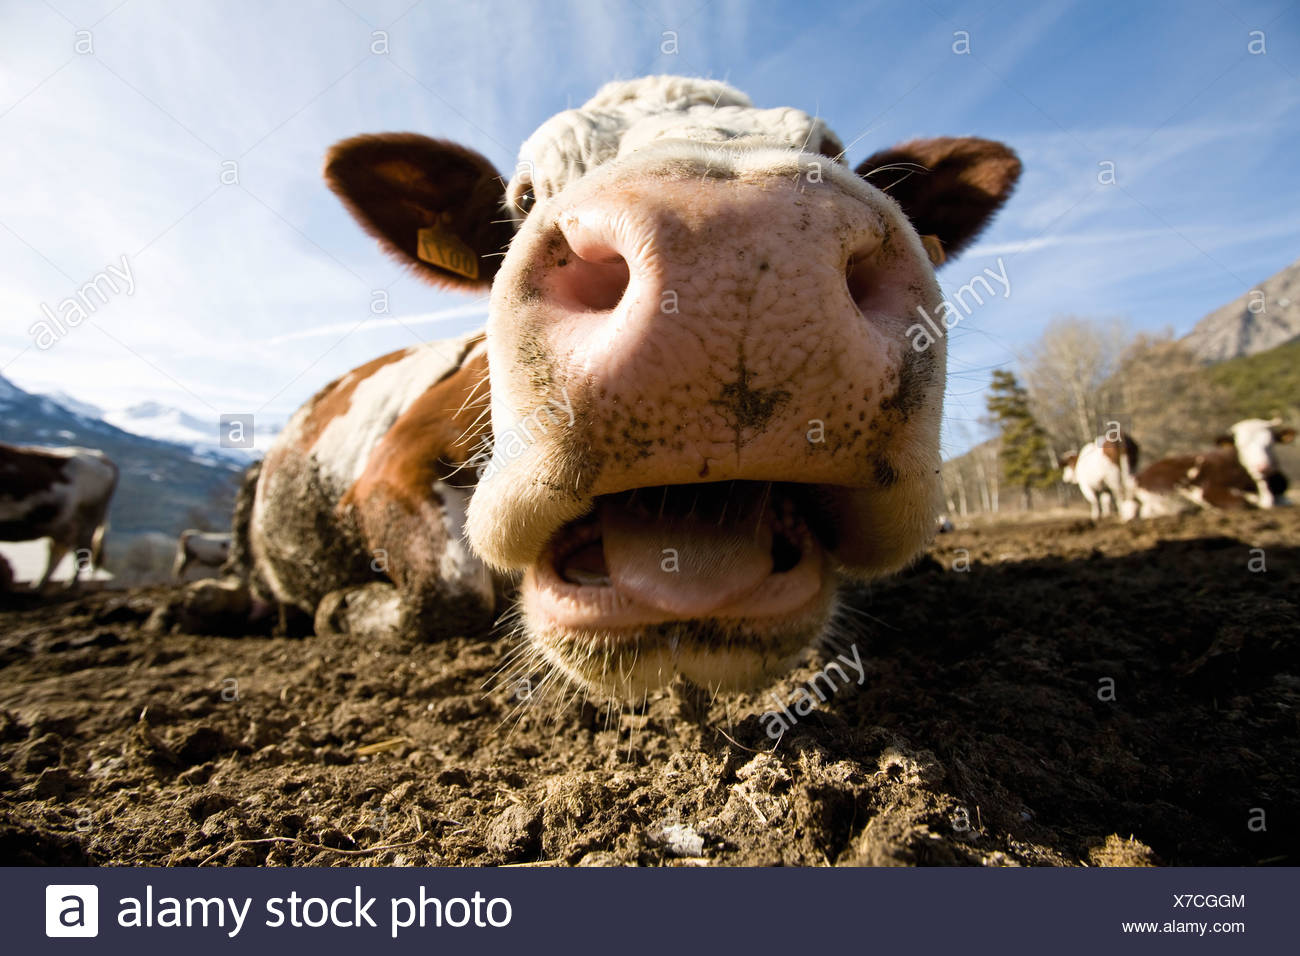 Cow's snout, close-up - Stock Image